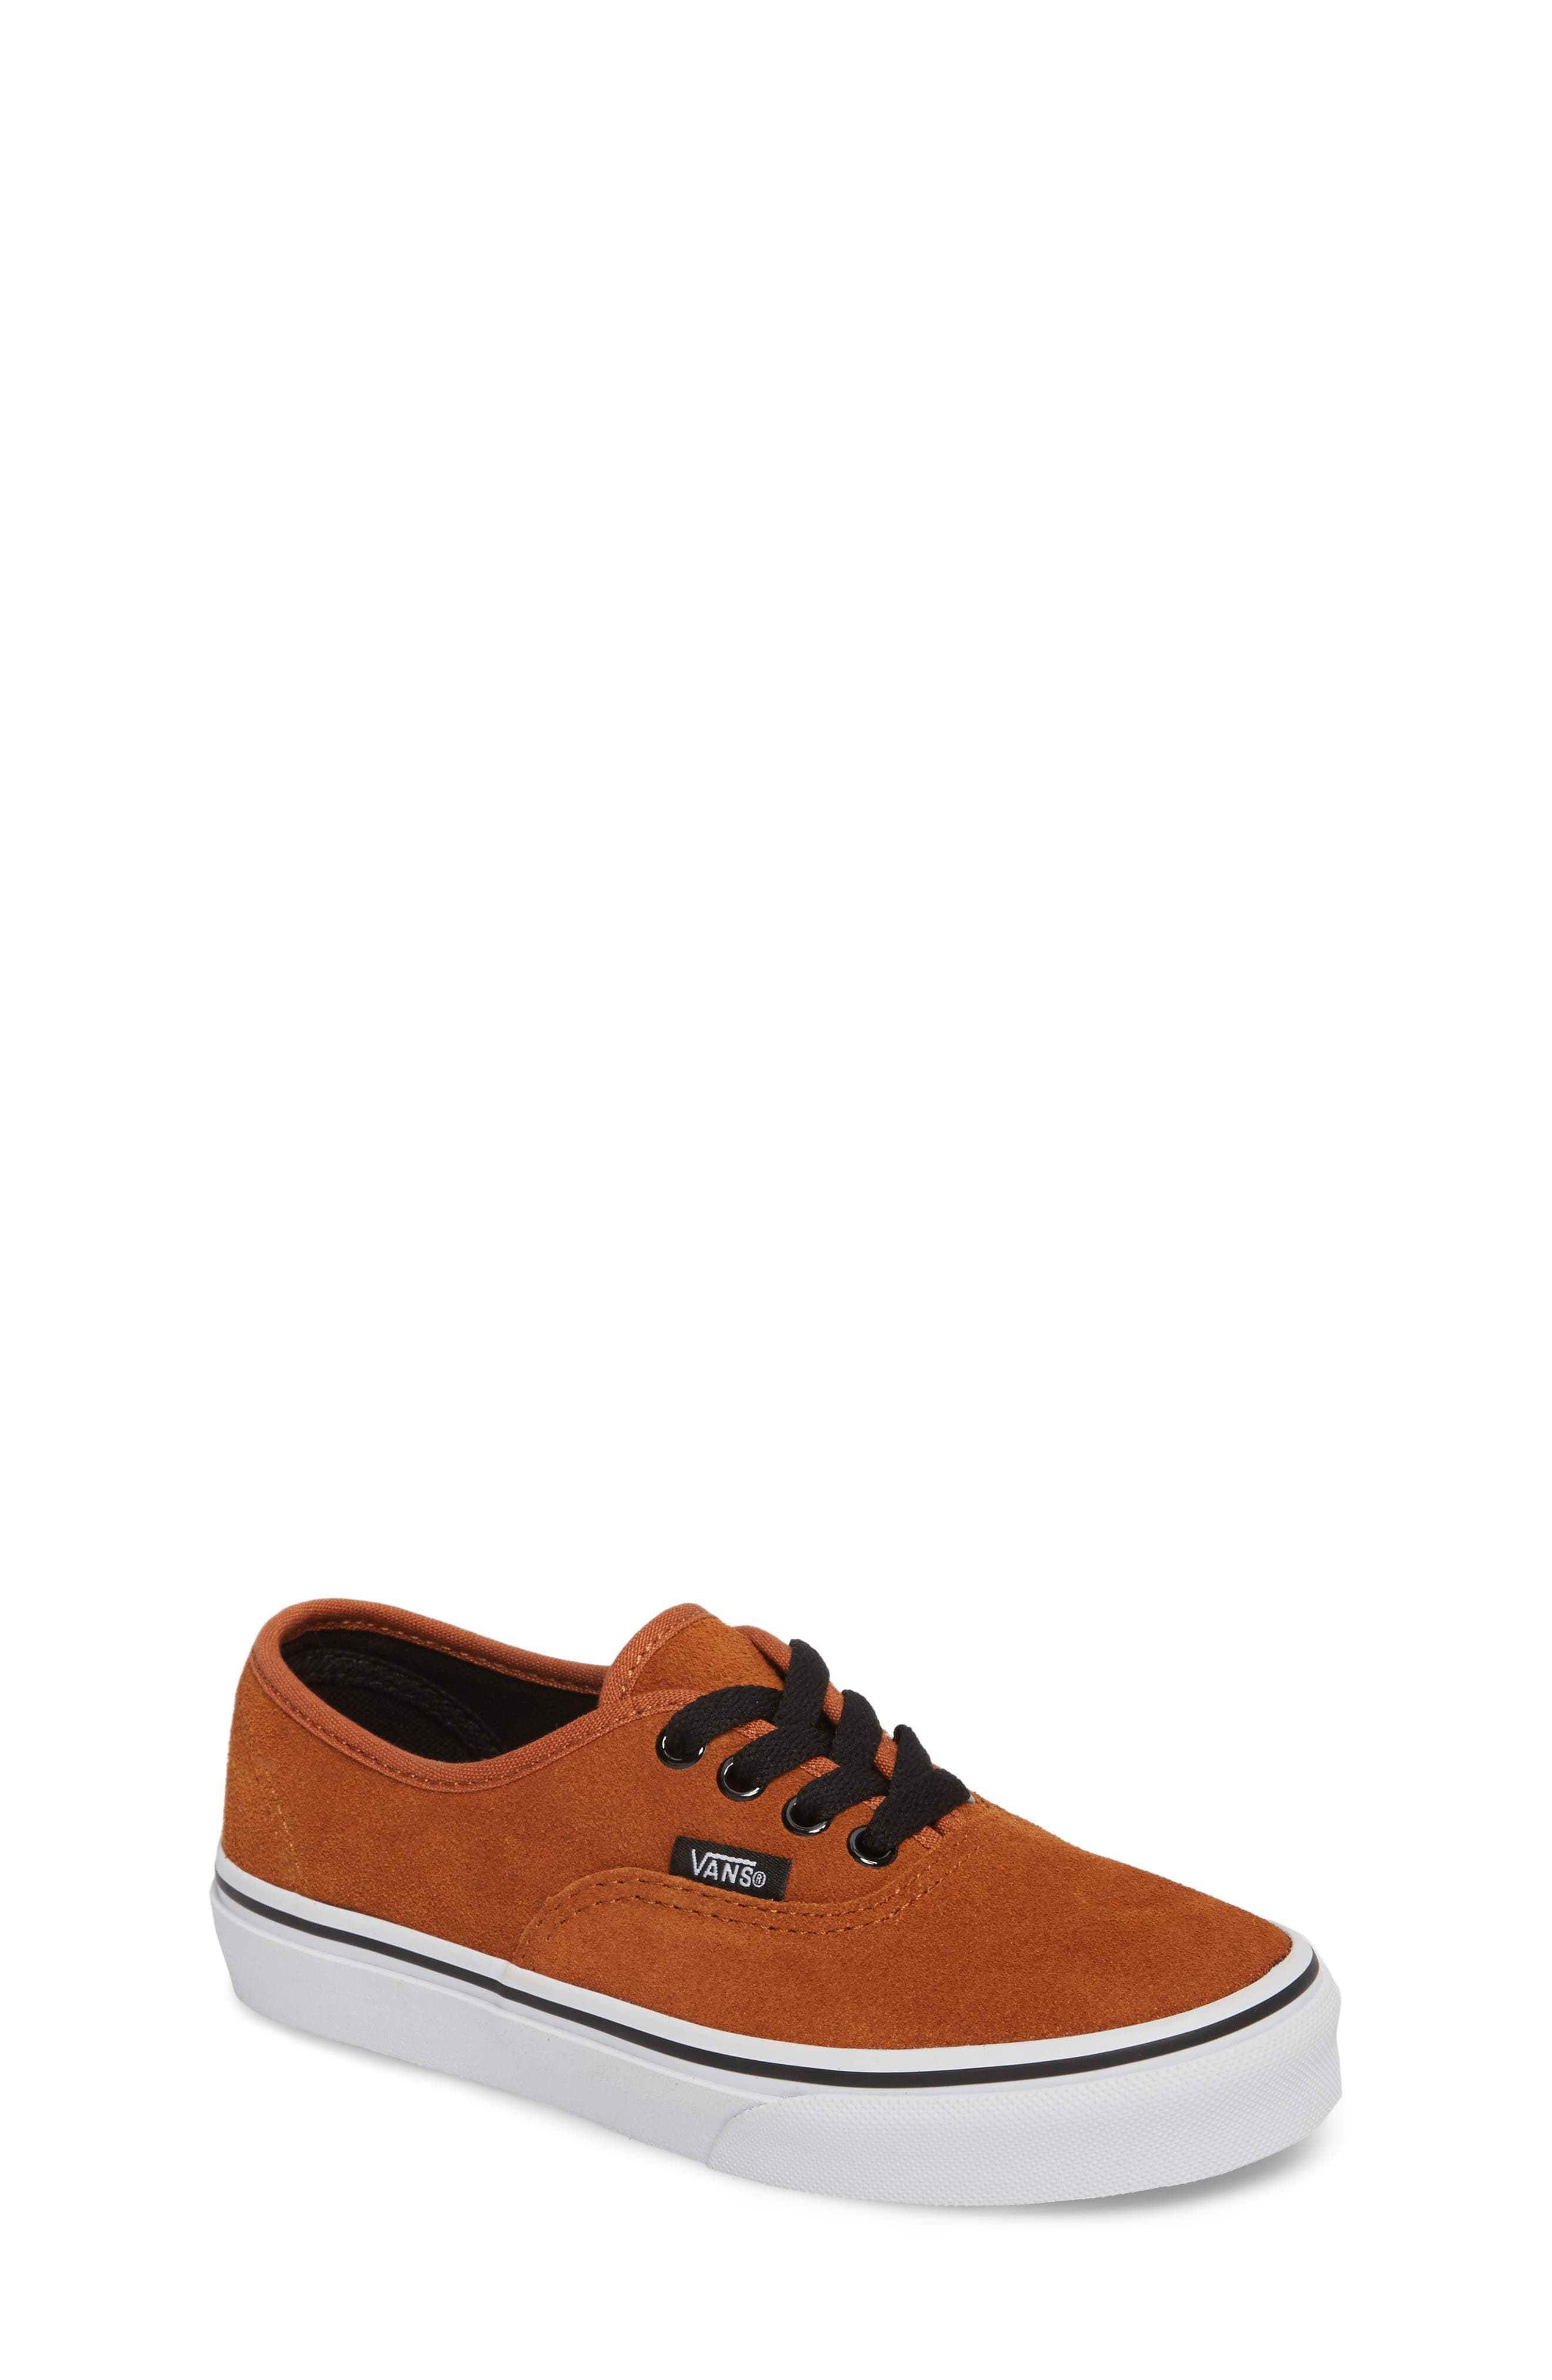 Authentic Sneaker,                             Main thumbnail 1, color,                             Glazed Ginger/ Black